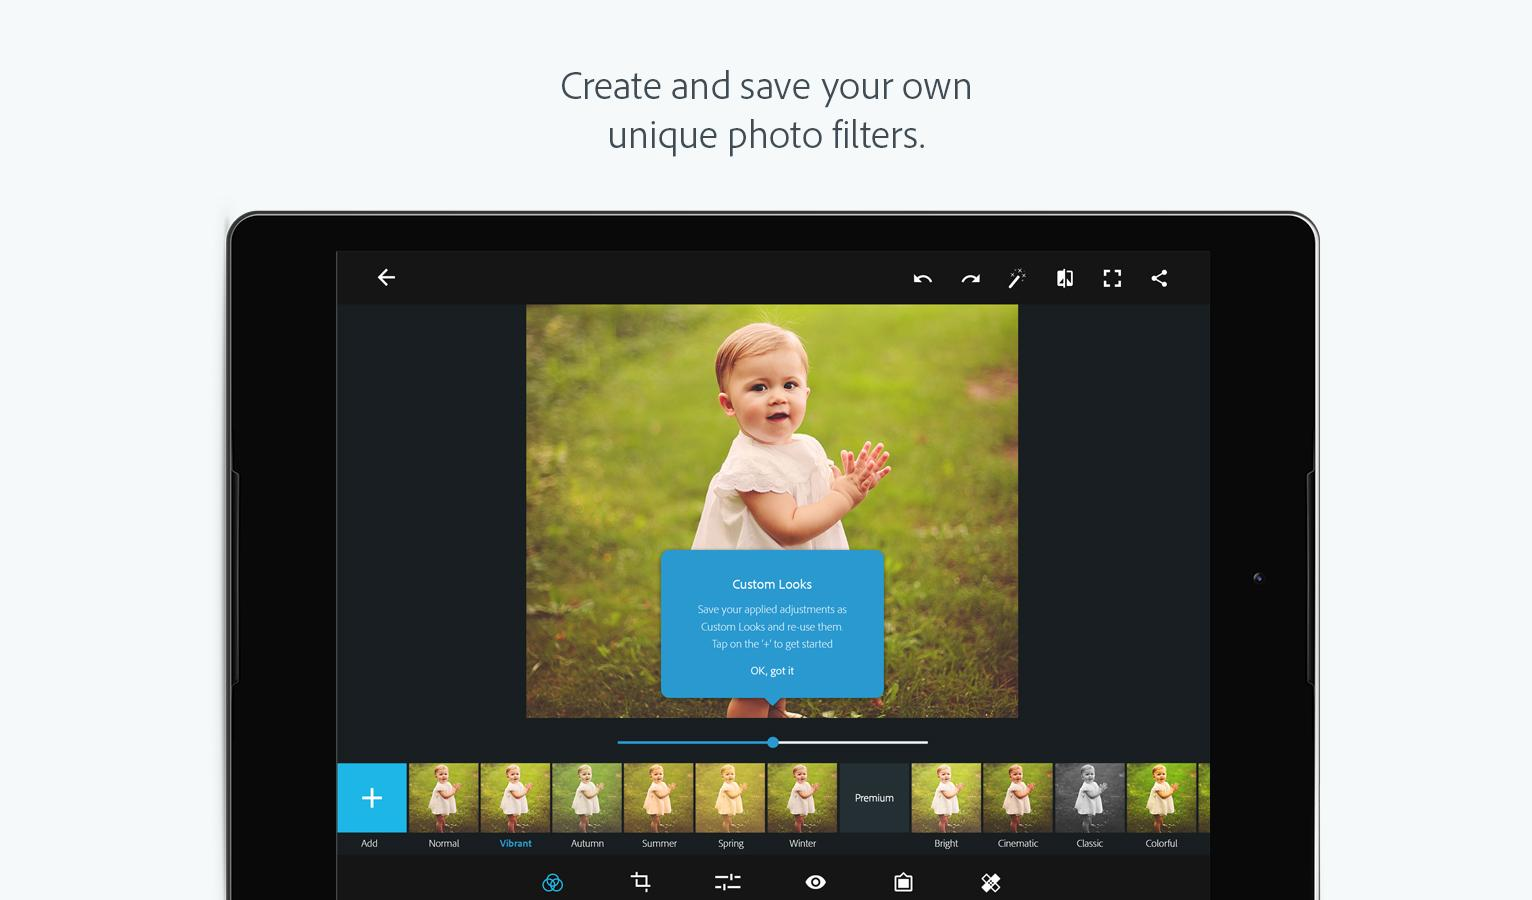 Screenshots of Adobe Photoshop Express for iPhone